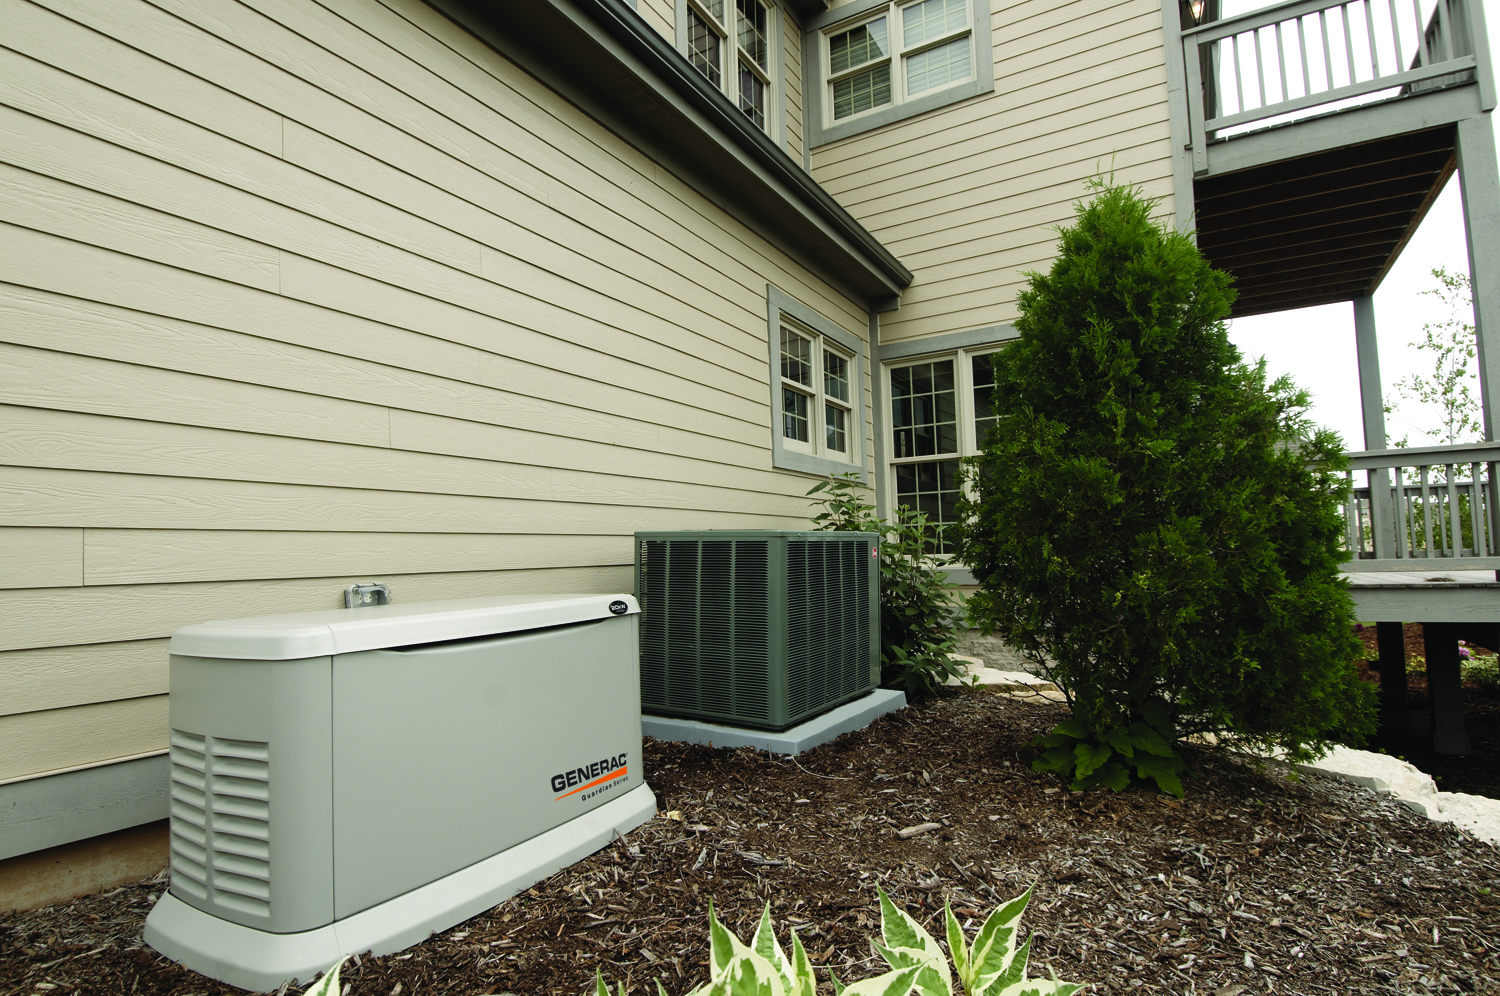 Generac Generator Installation by Simmons Heating and Cooling